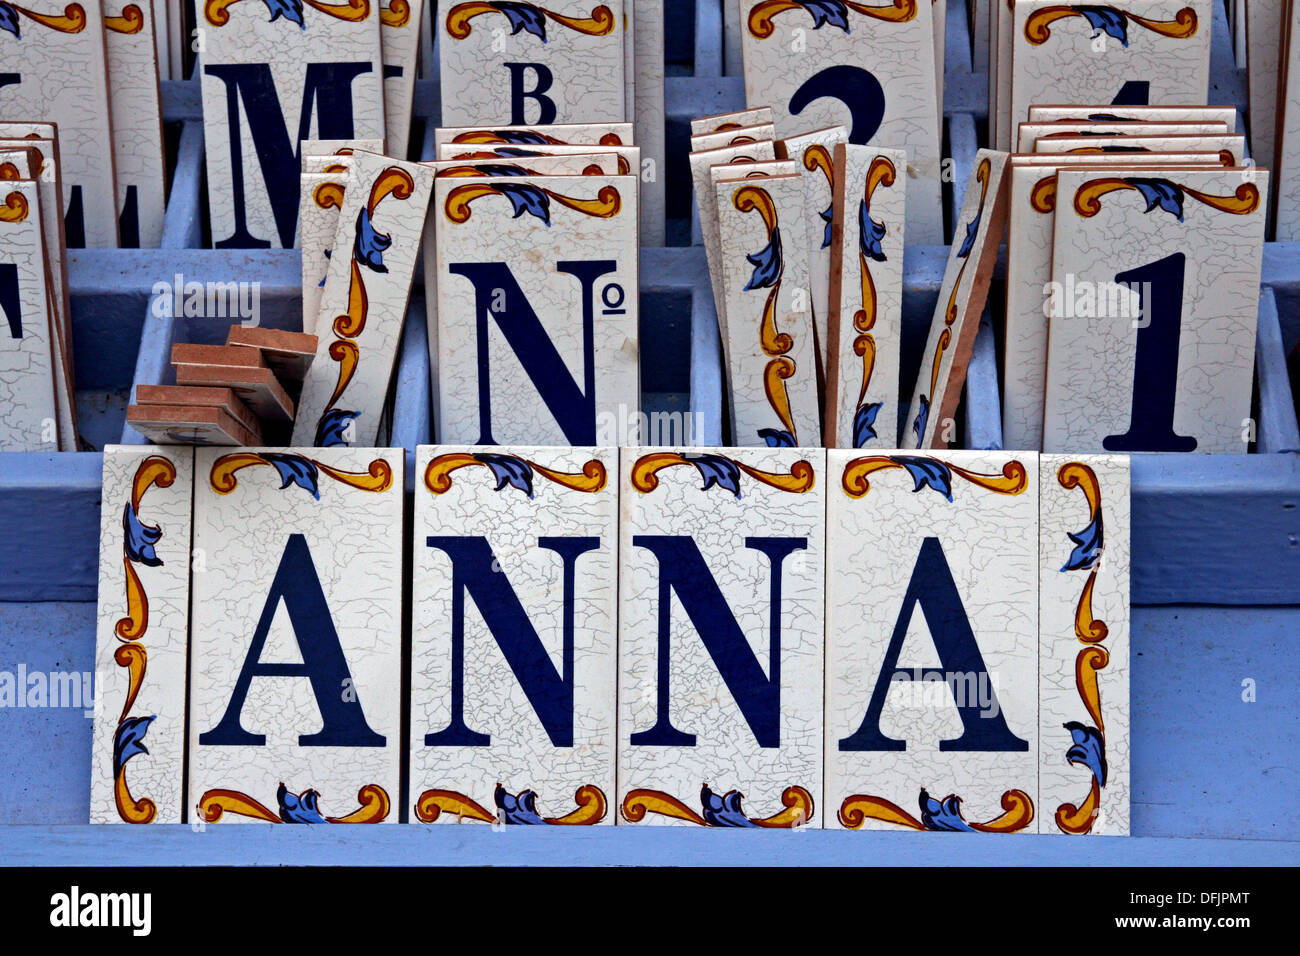 Ceramic letter tiles gallery tile flooring design ideas name ceramic letter tiles stock photo royalty free image name ceramic letter tiles doublecrazyfo gallery dailygadgetfo Gallery